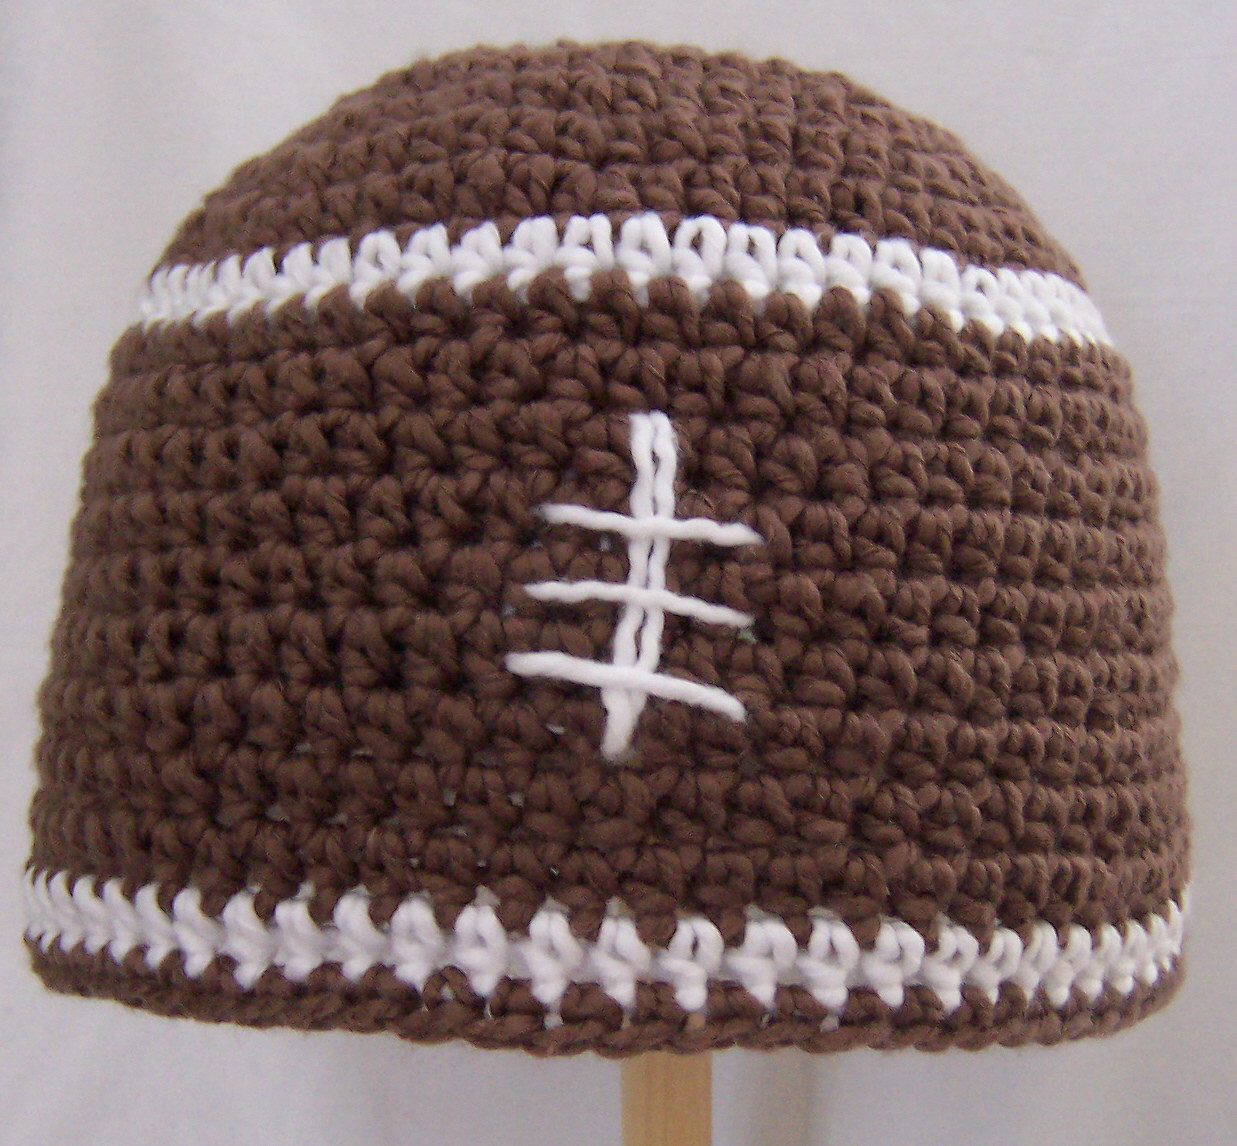 Free Crochet Chemo Hat Patterns Lovely Free Crochet Patterns Free Crochet Pattern Football Of Awesome 43 Ideas Free Crochet Chemo Hat Patterns